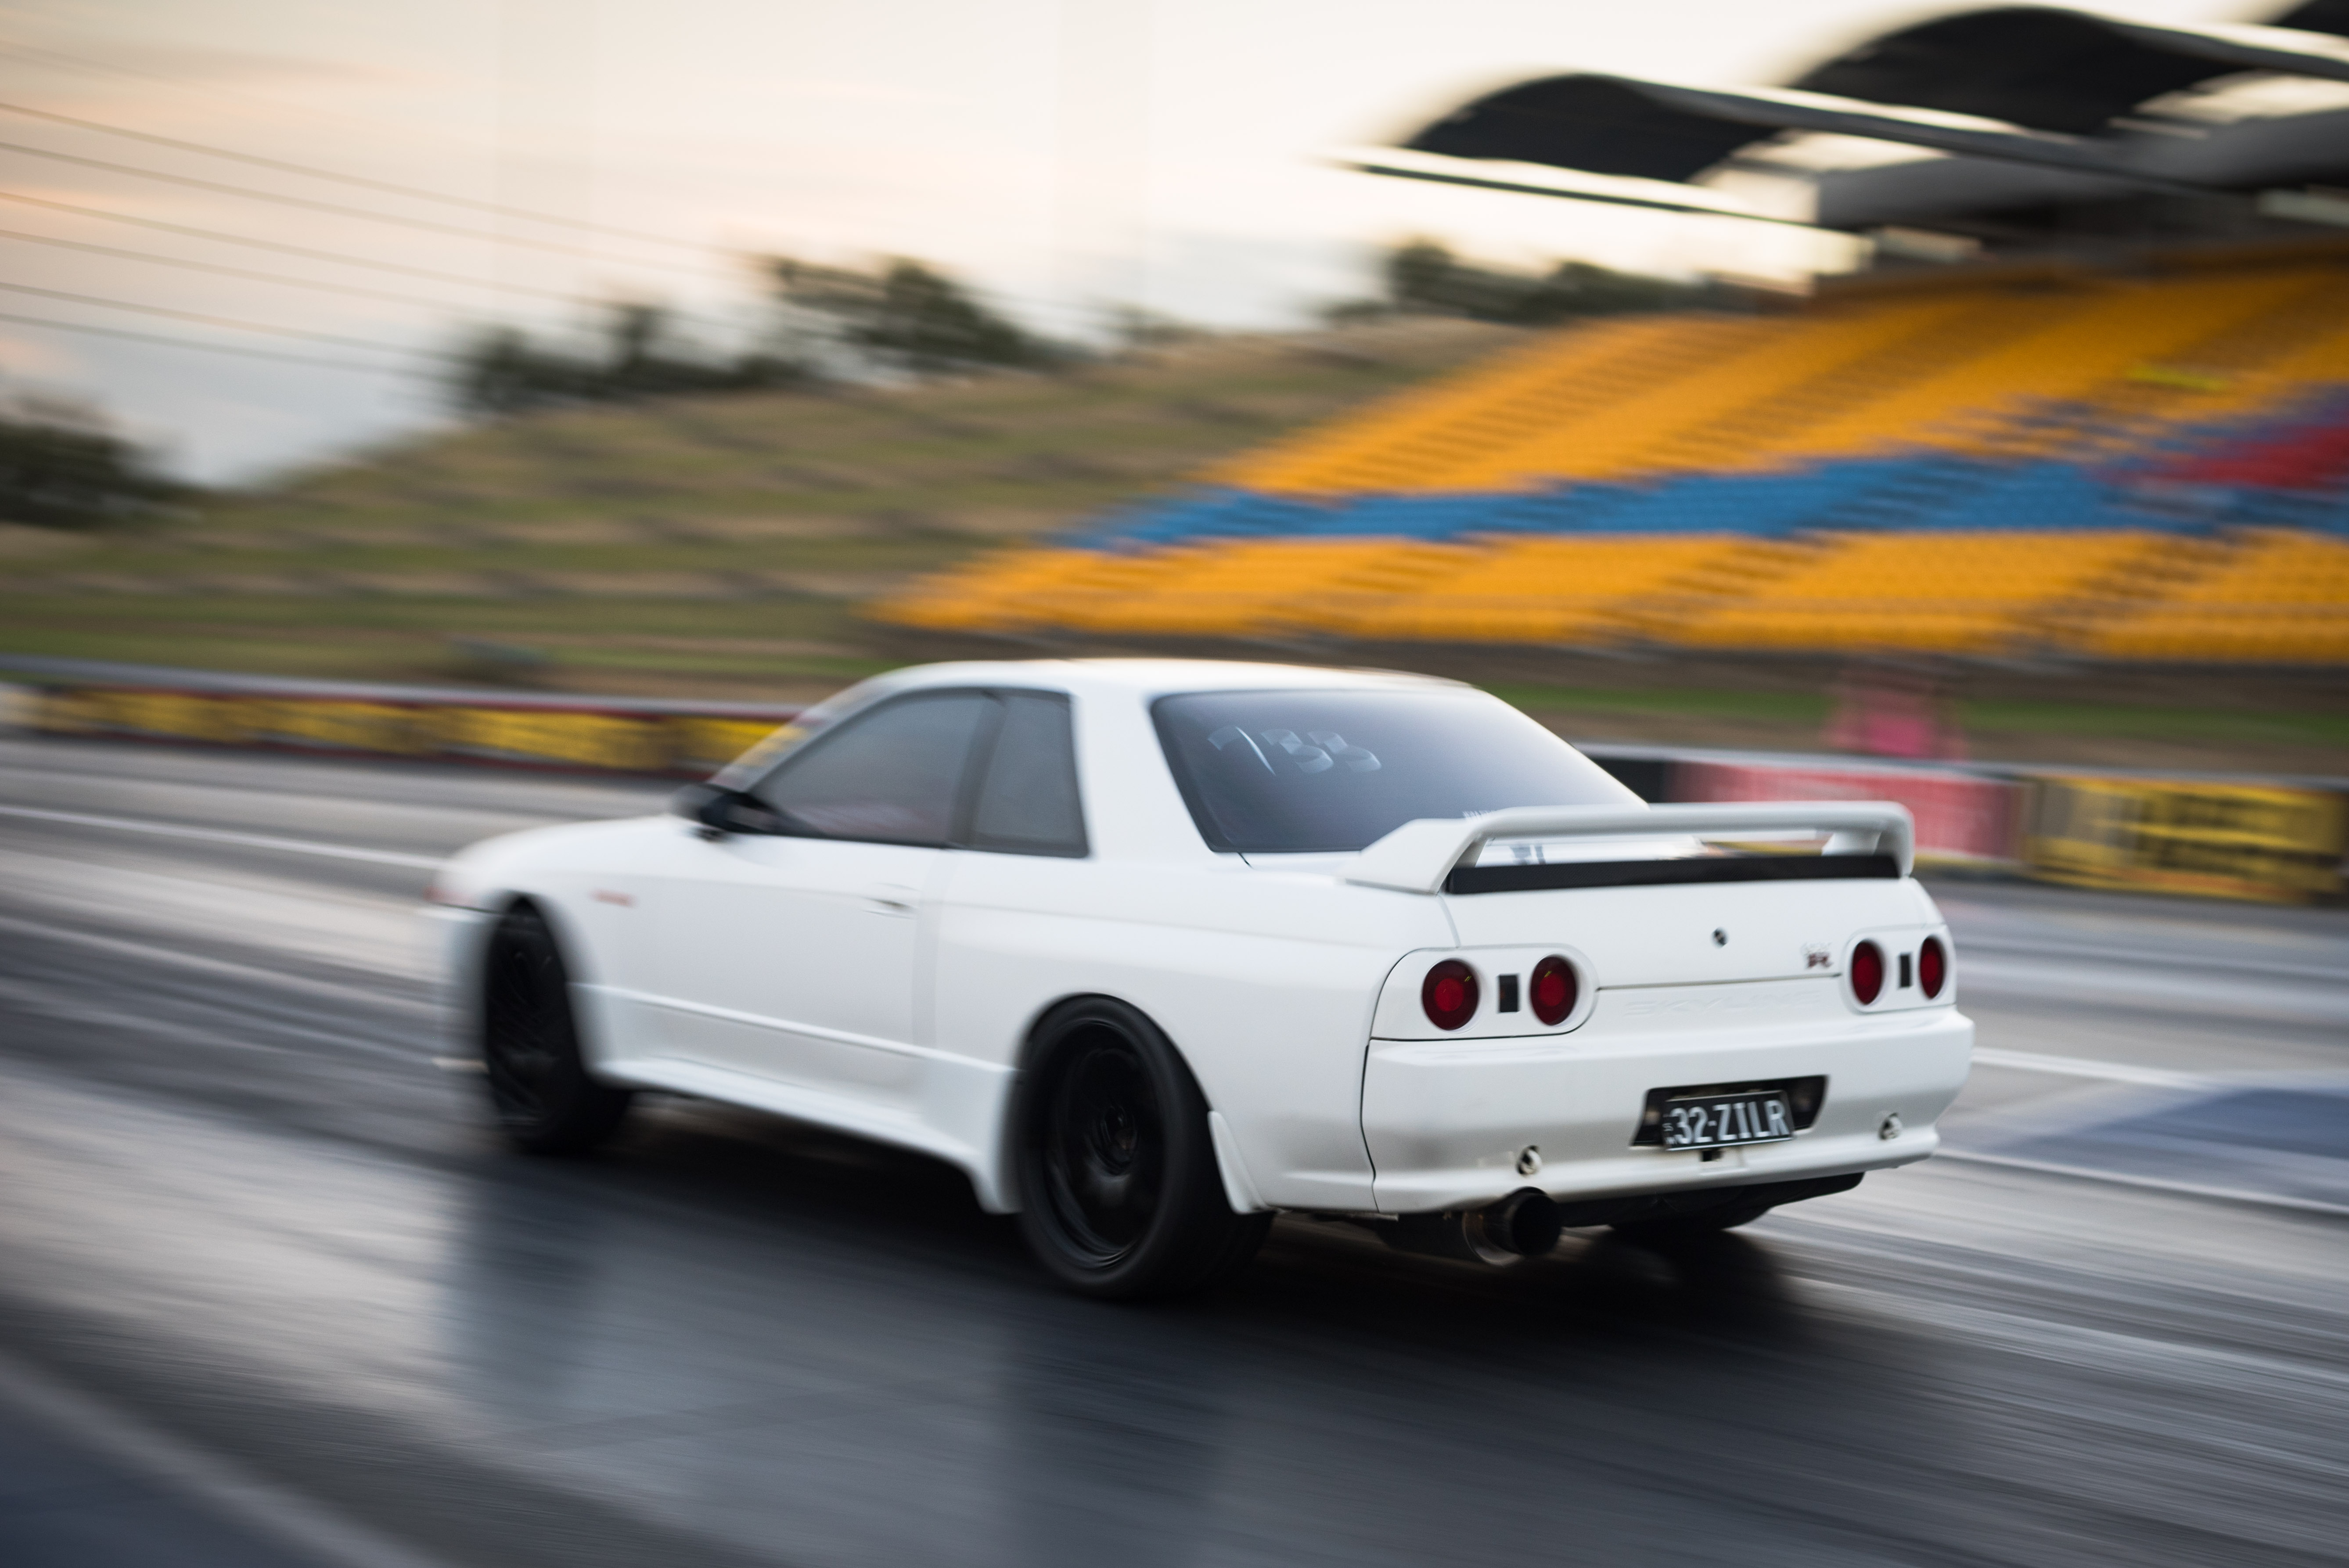 David Dalrymple Hits The Drags In His Time Attack Spec R32